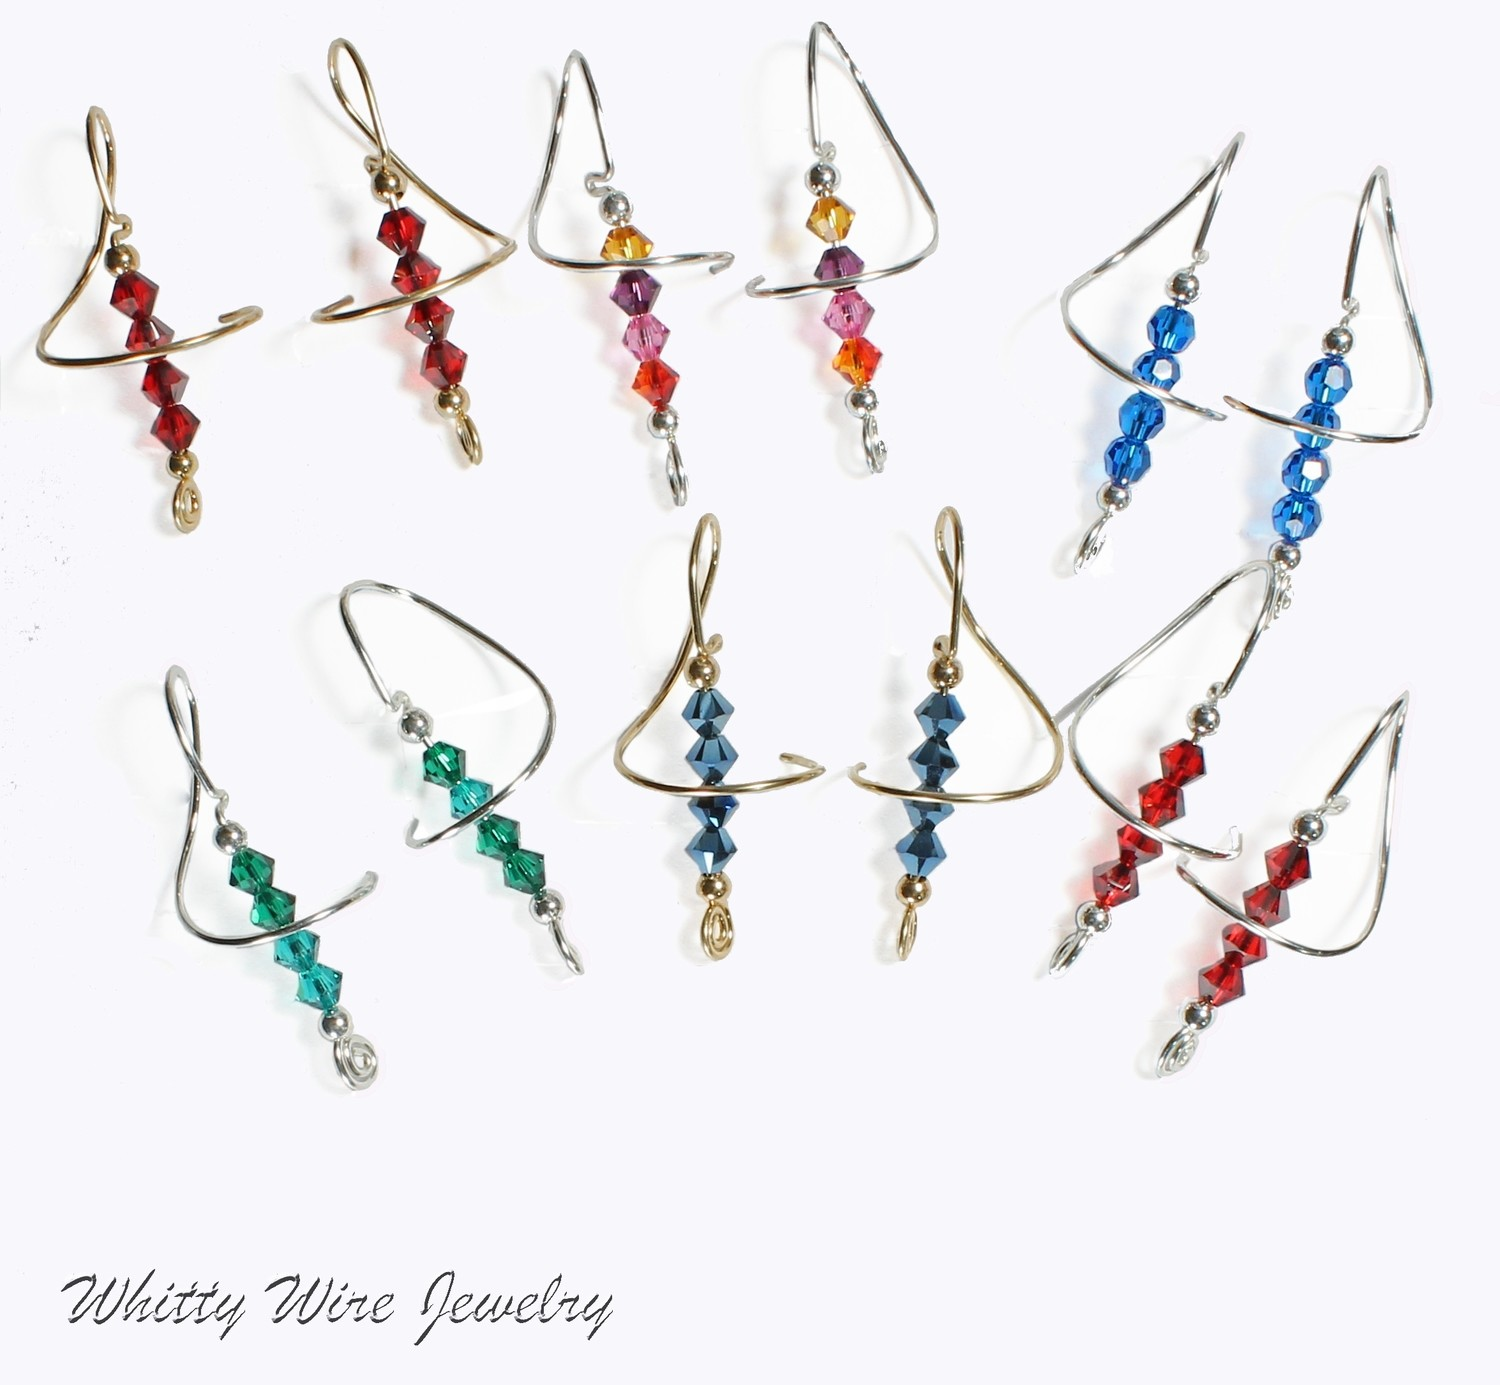 Swarovski Crystal Swirl Earrings with Choice of Sterling Silver, Argentium Silver or 14 K Gold Filled Ear Wires